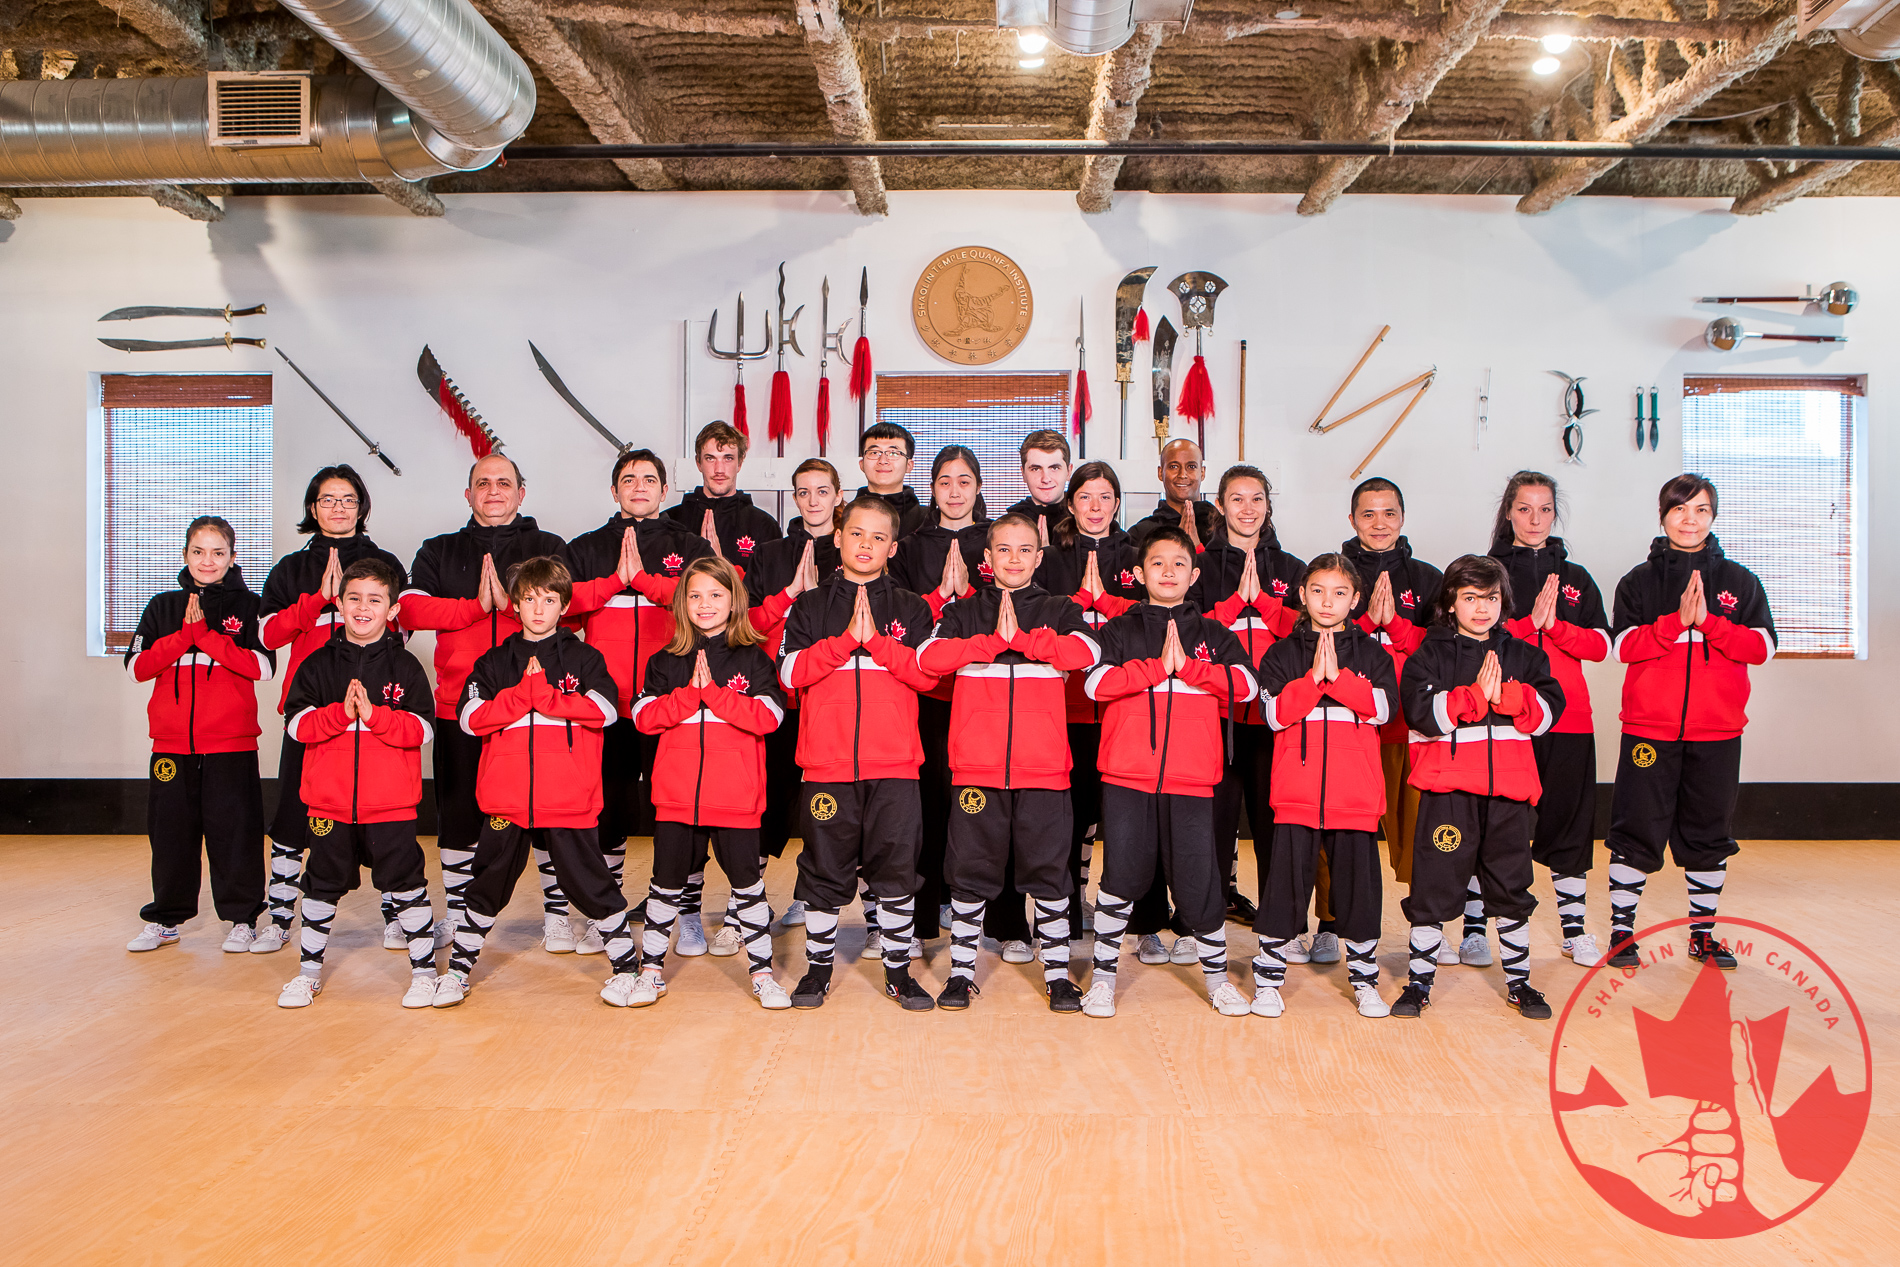 Shaolin Team Canada June 2018 Practice Photoshoot